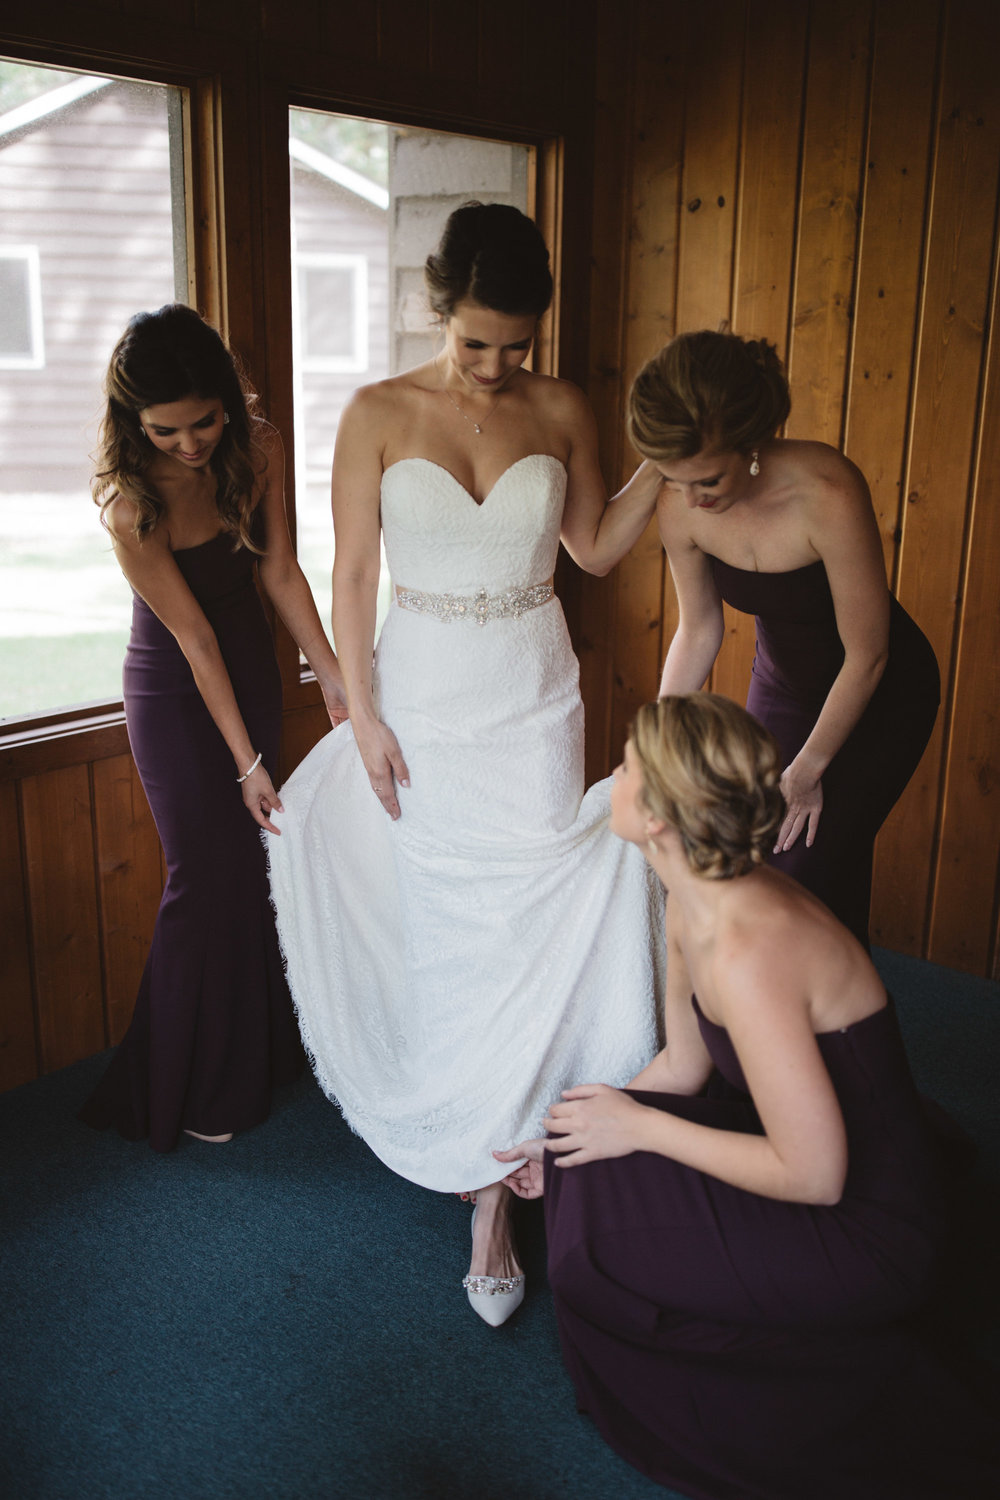 Bride and bridesmaids getting ready at Grand View Lodge. Photography by Britt DeZeeuw Brainerd Minnesota wedding photographer.